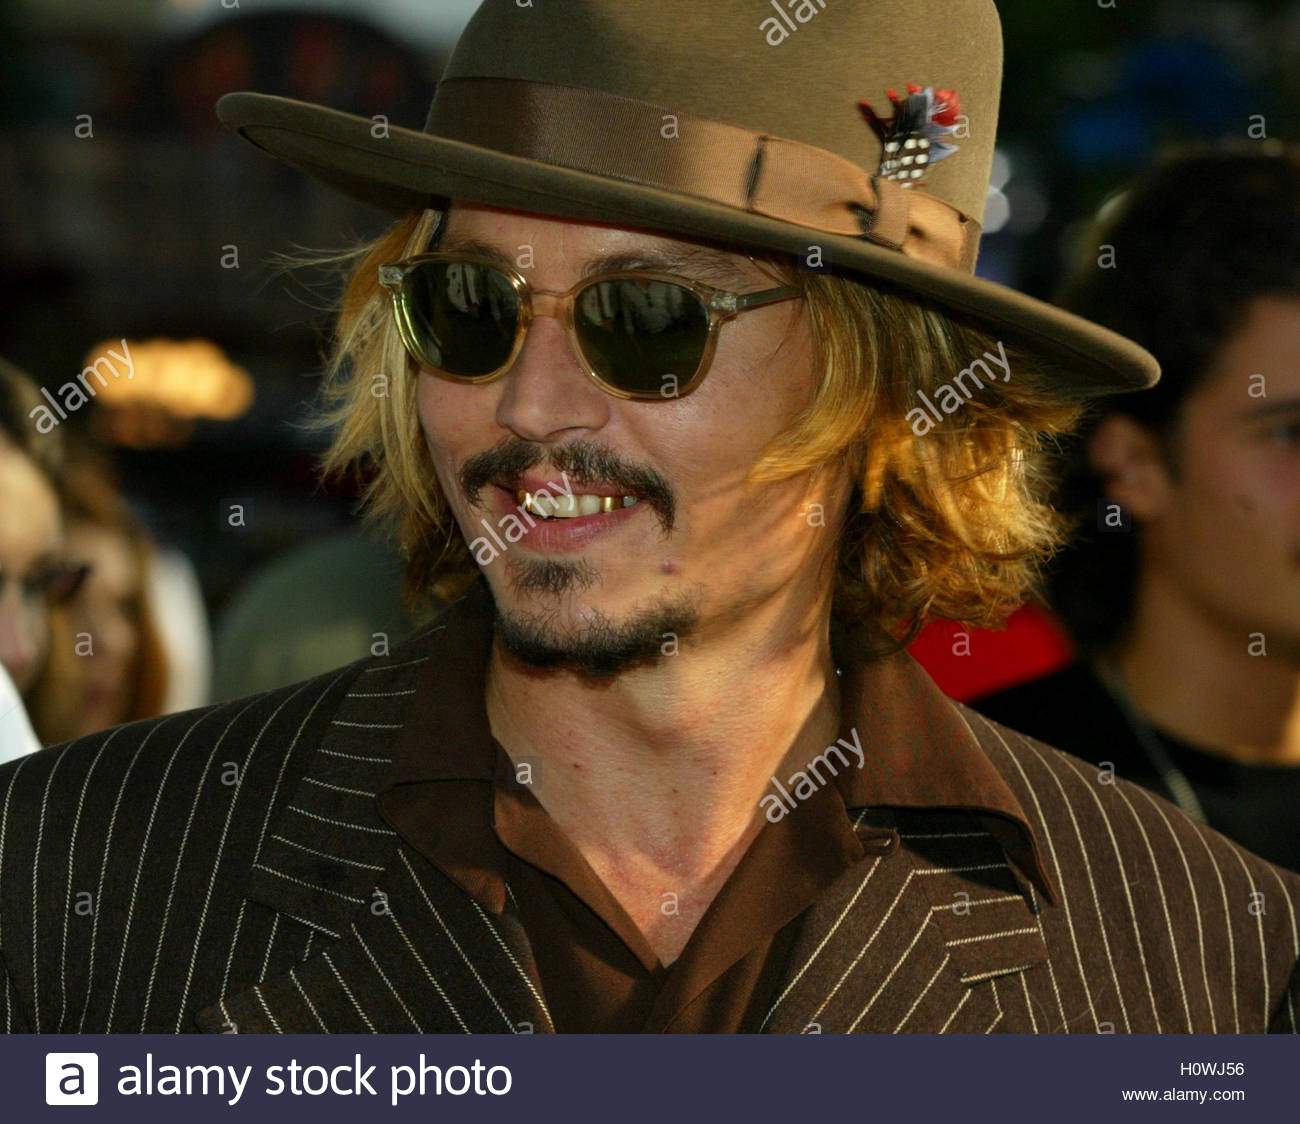 johnny depp film star Johnny depp's lawyer,  johnny depp's film alice through the  the hollywood star had 'continued to rant in an aggressive and incoherent manner' before.